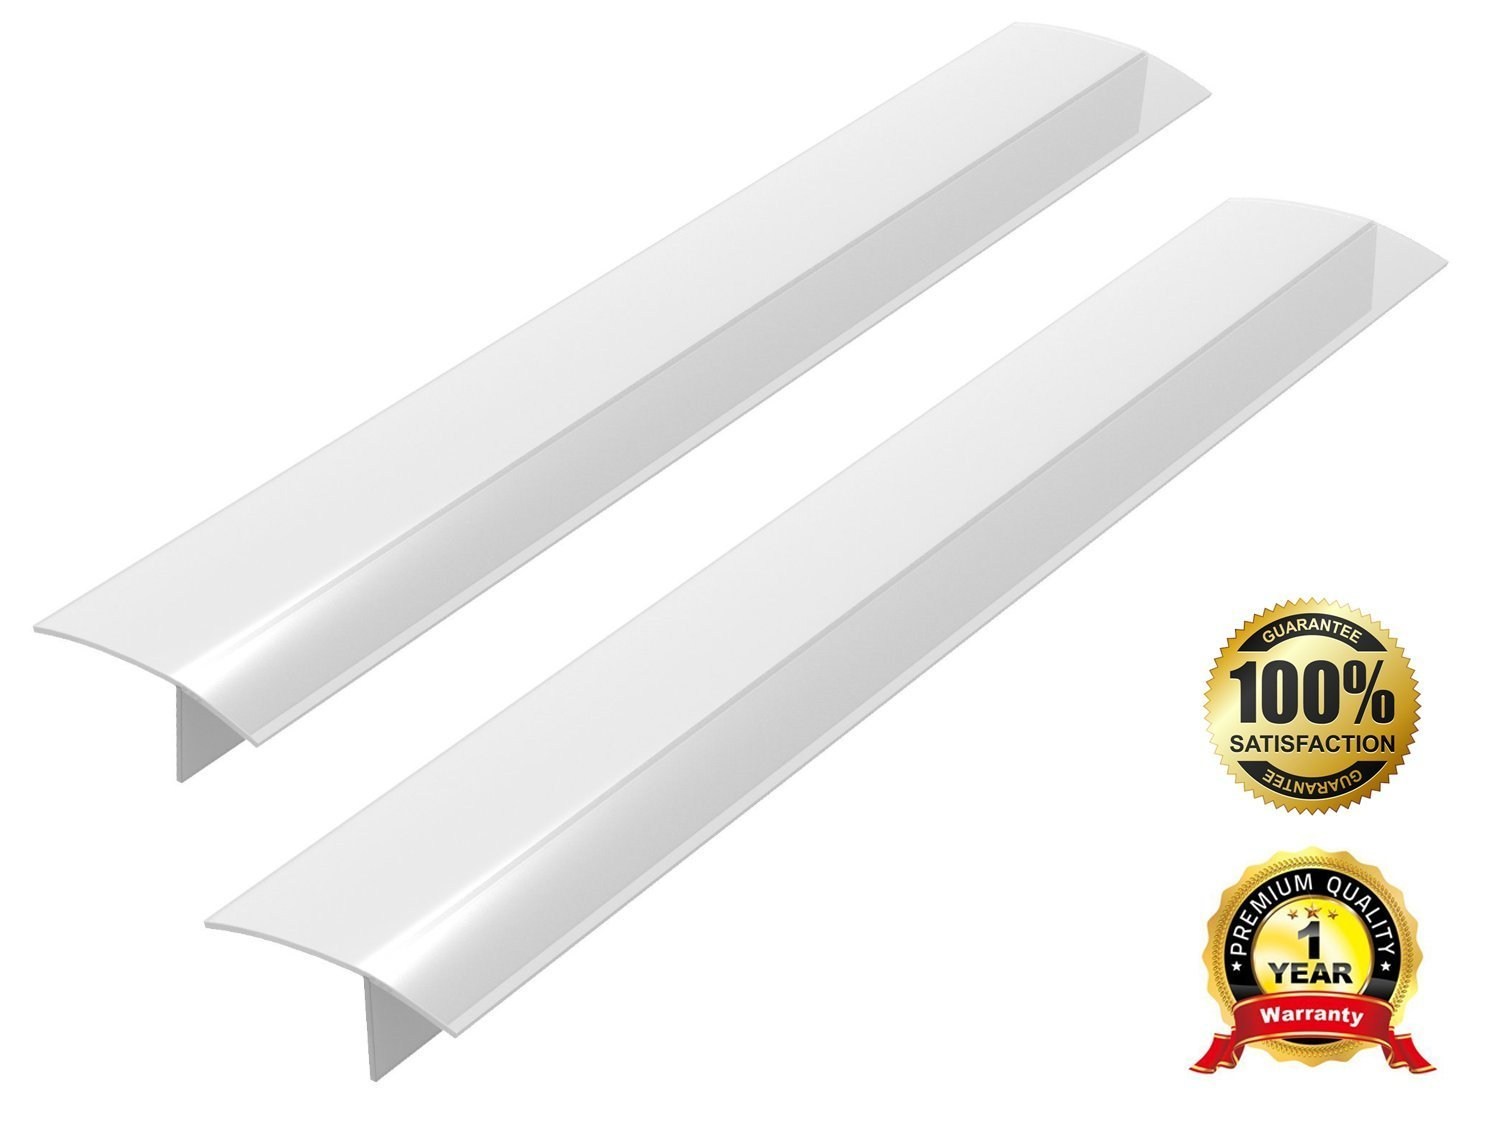 Stove Counter Gap Cover - Flexible Silicone Kitchen Gap Cooktop Gap Covers, Food Grade, Non-toxic, Spill Guard for Stovetop, Counter, Oven, Washer, Dryer, Washing Machine, 2 Packs (Translucent White)